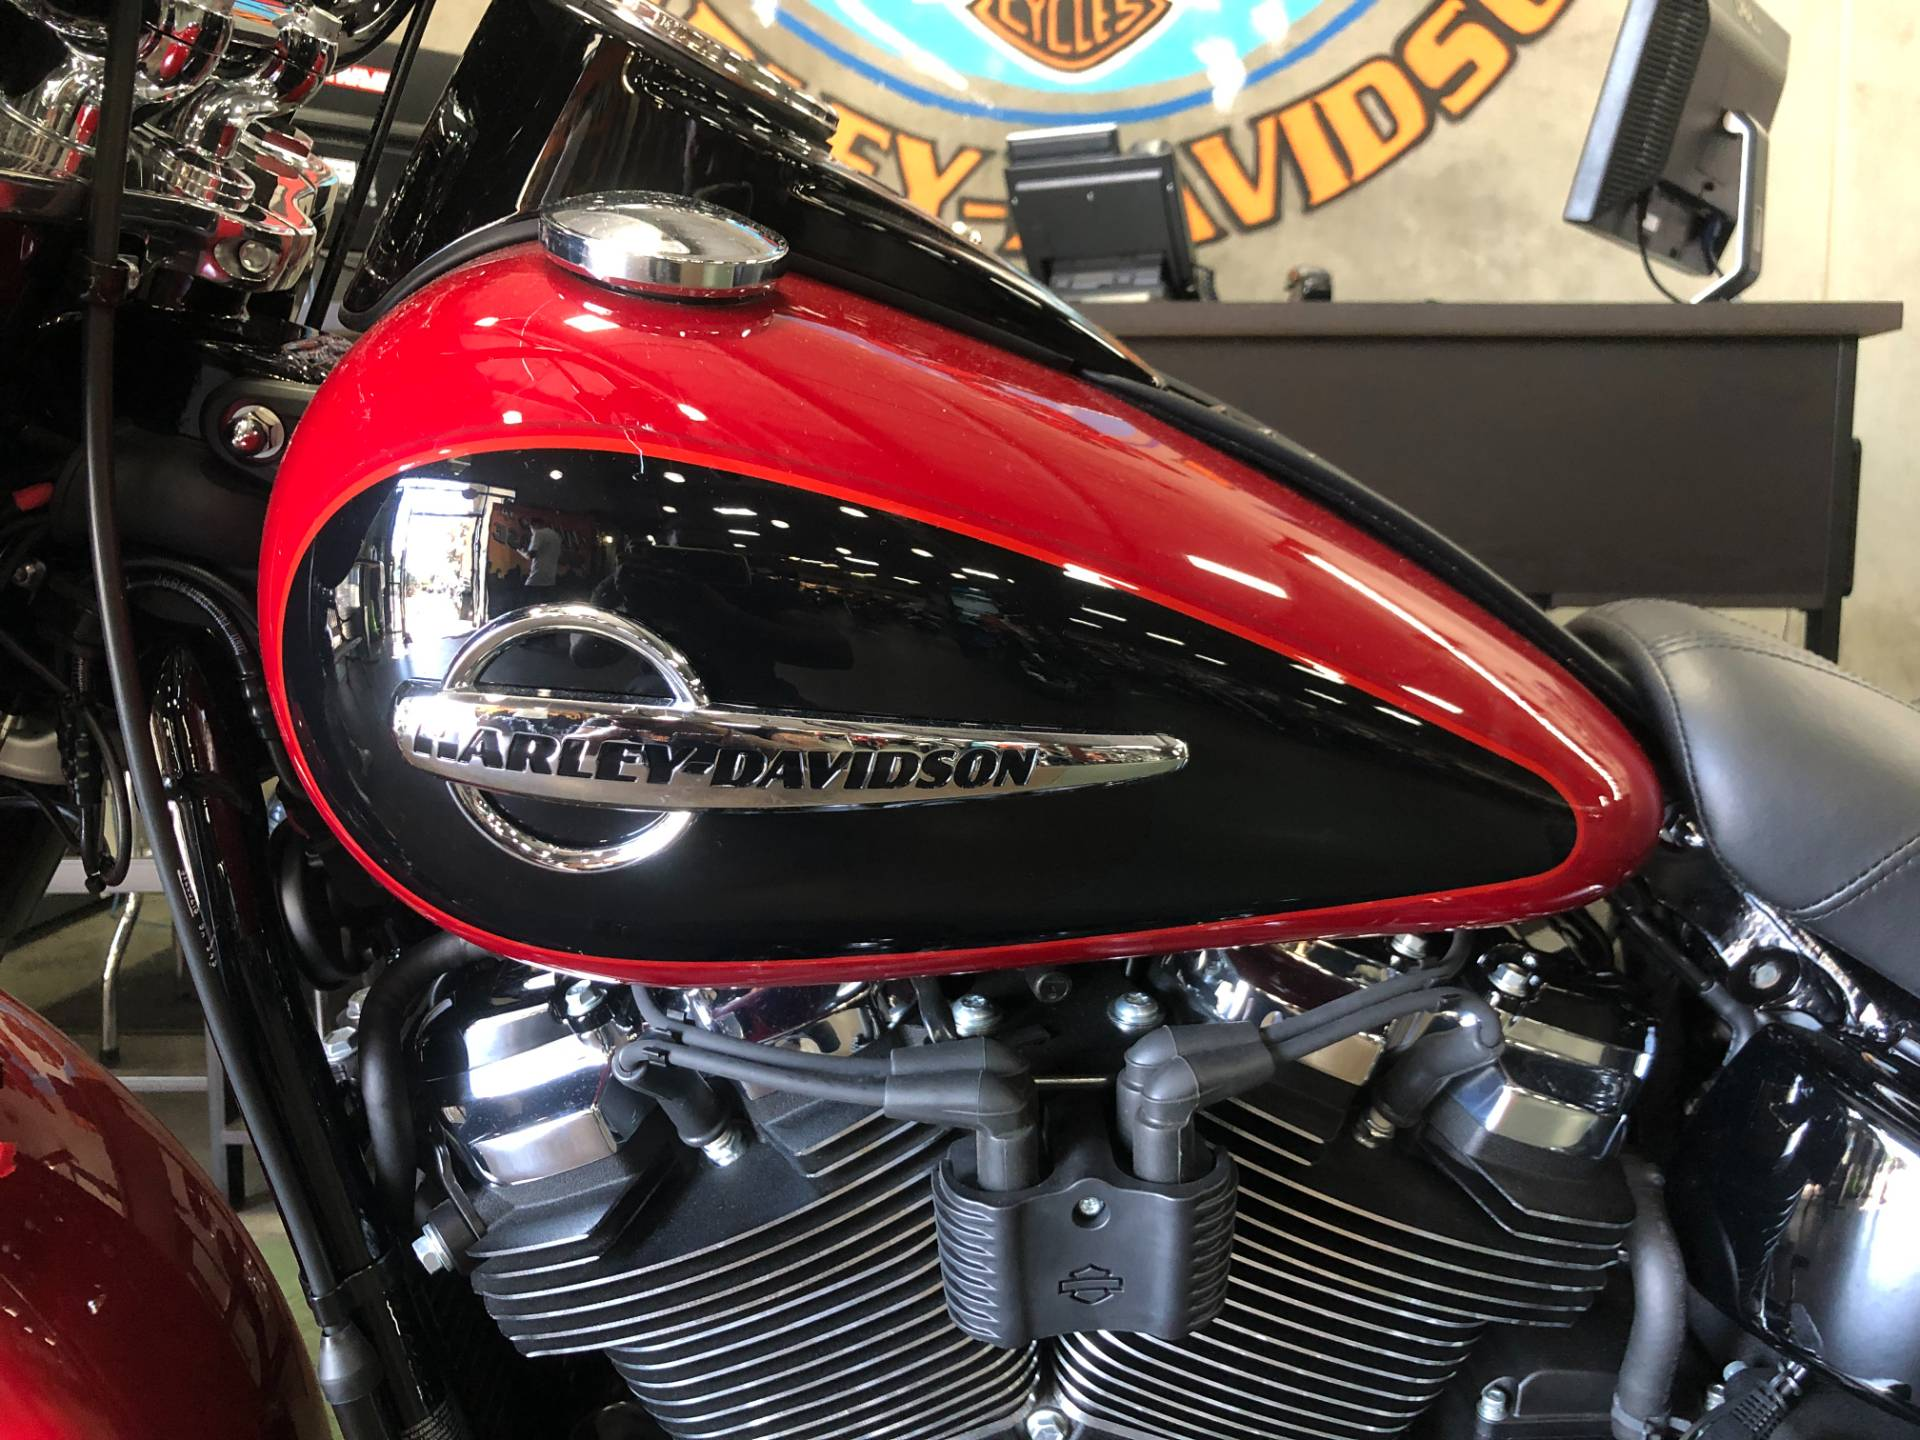 2020 Harley-Davidson Heritage Classic 114 in San Jose, California - Photo 8